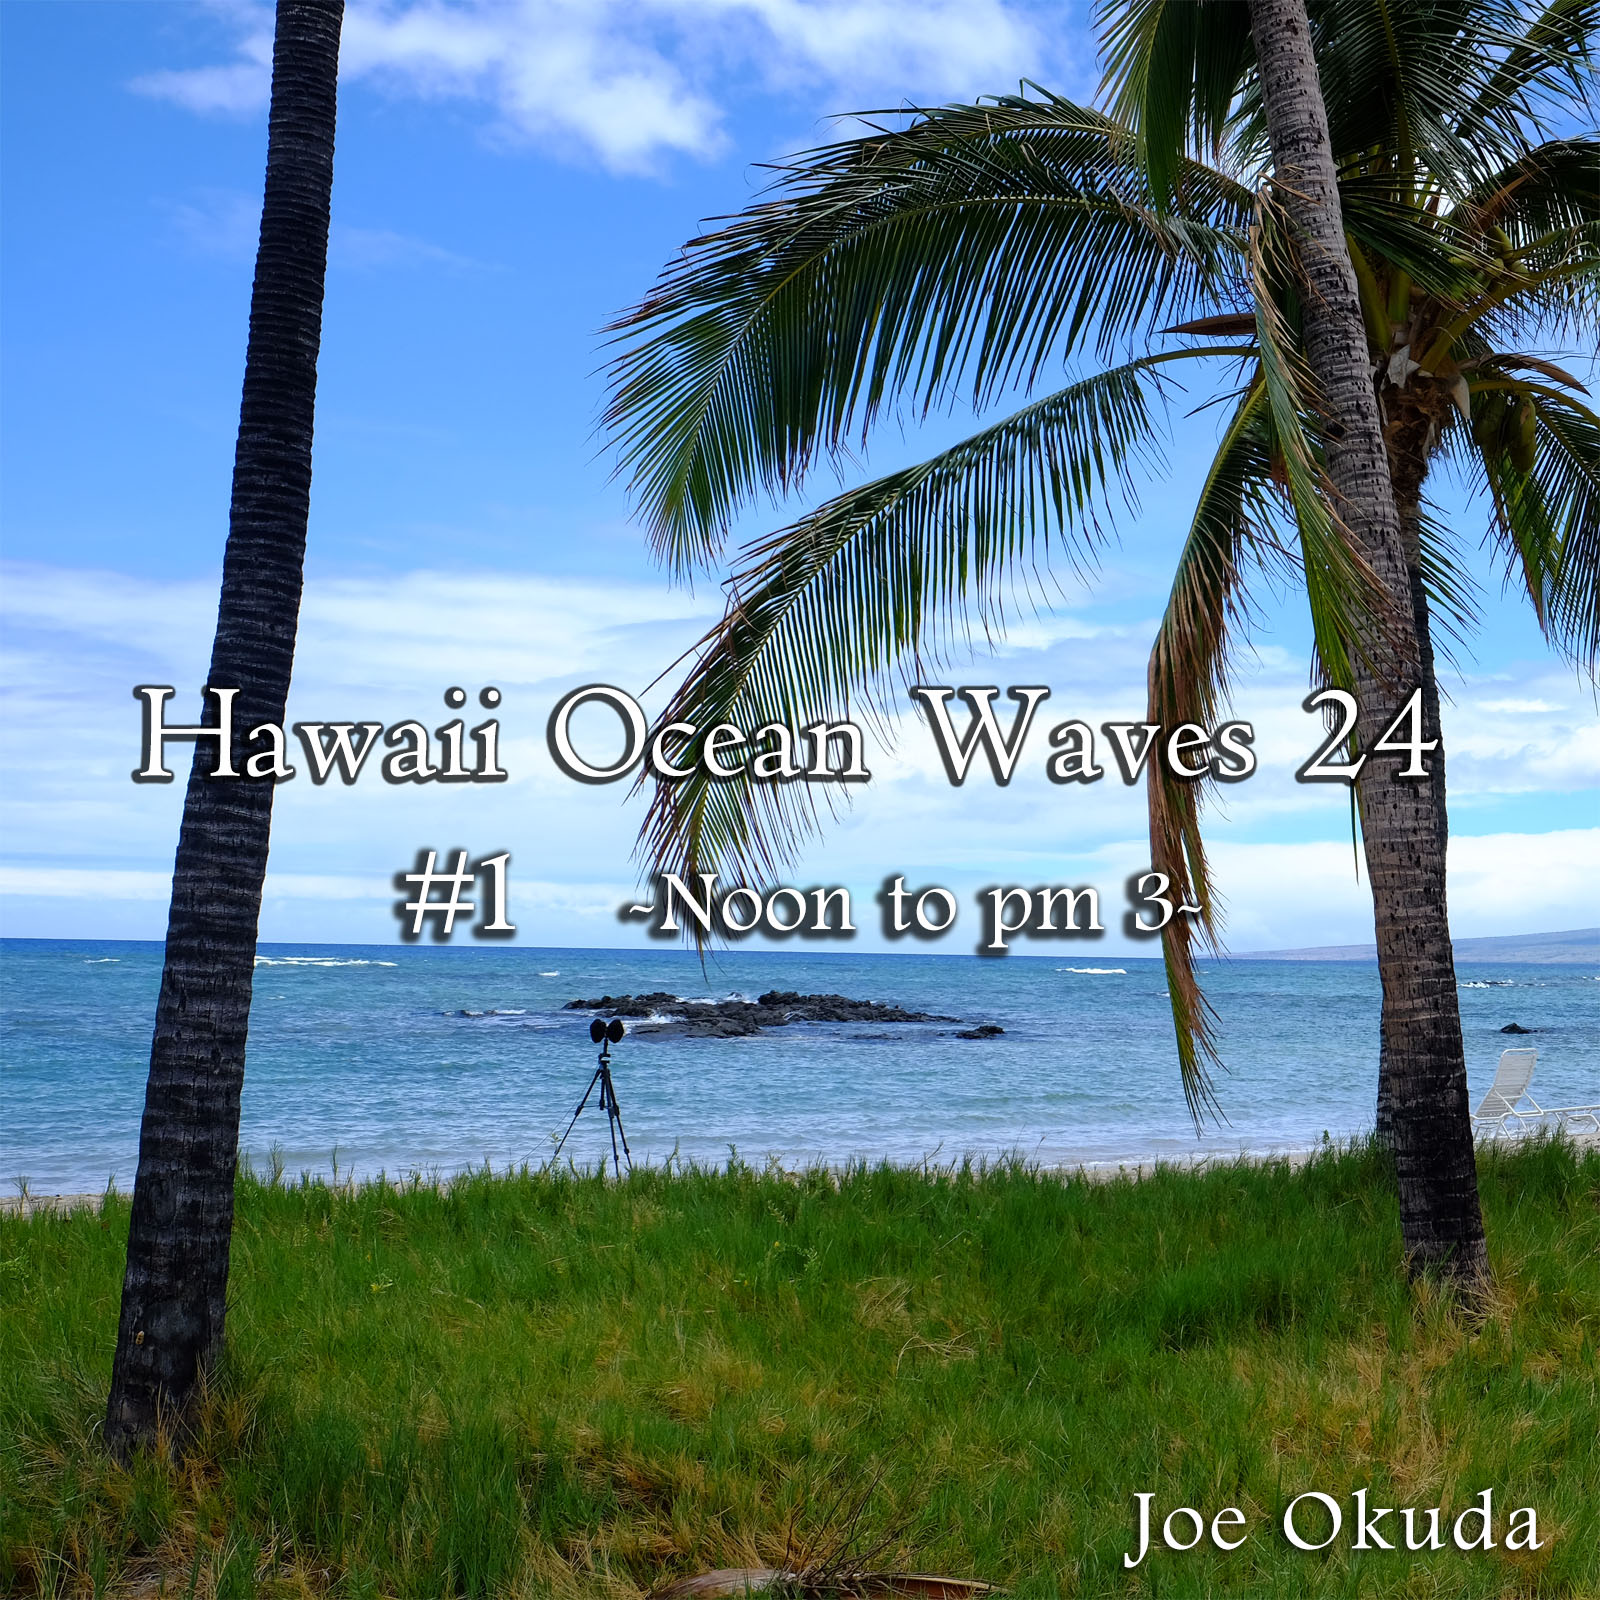 Hawaii Ocean Waves 24 #1 -Noon to 03 pm- ('Normalize Volume' flag OFF Recommended)